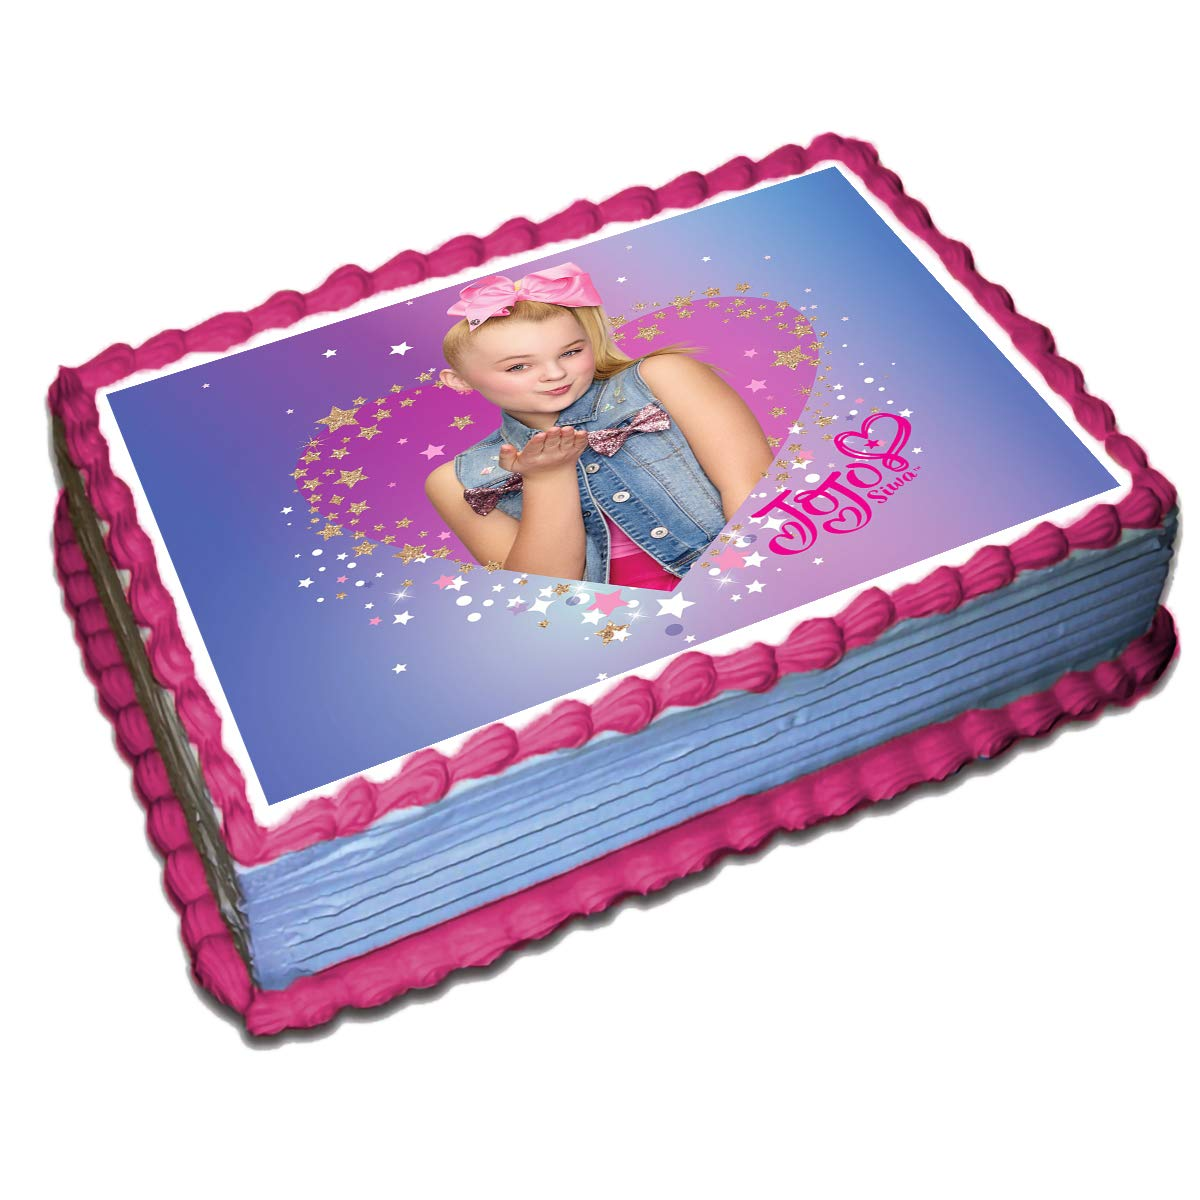 Jojo Siwa Cake Toppers Icing Sugar Paper 1 4 8 5 X 11 5 Inches